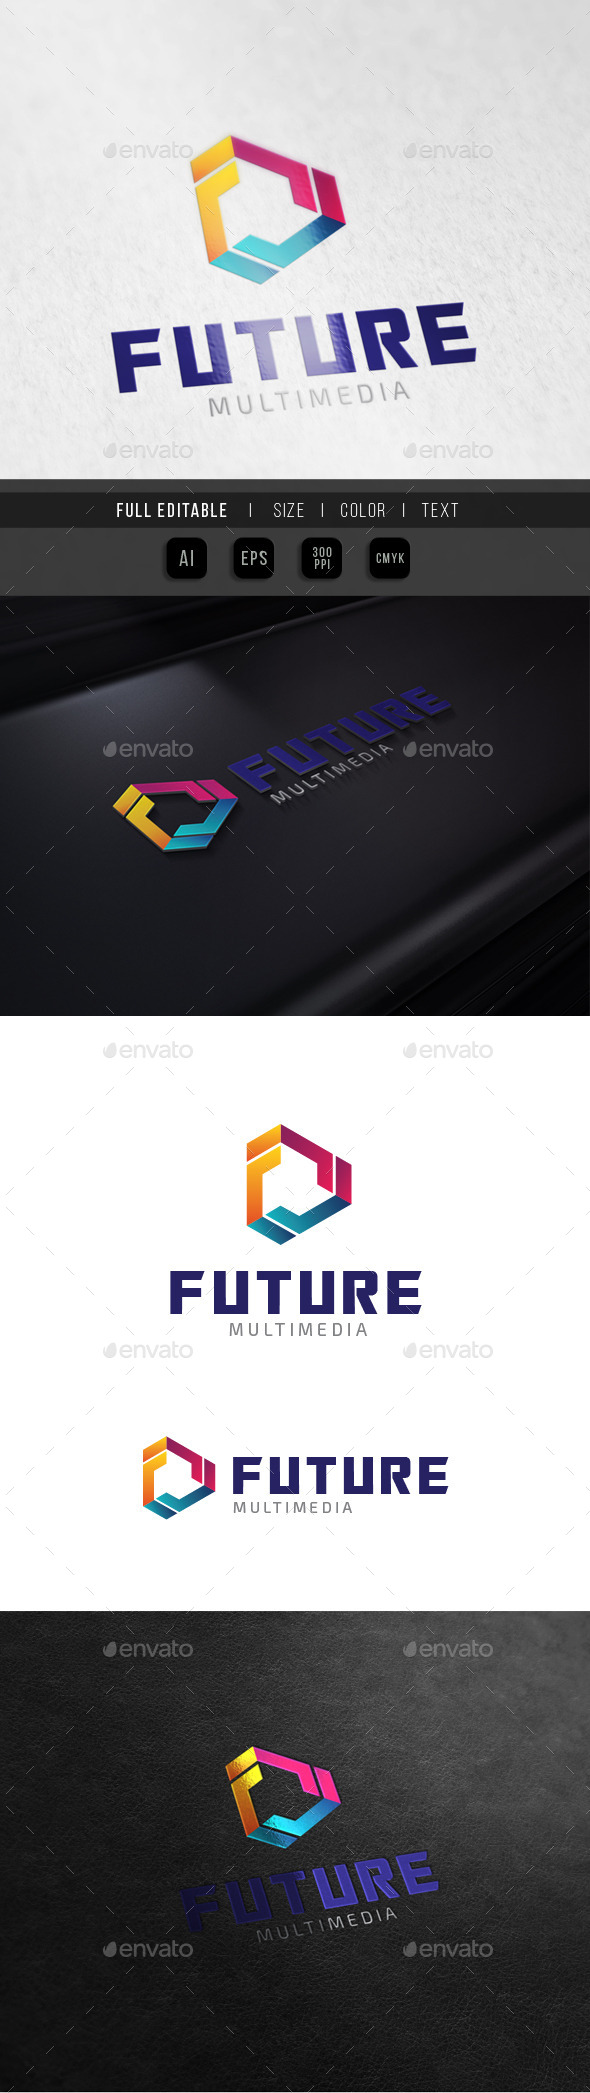 Future Technology - F Play Multimedia - Abstract Logo Templates